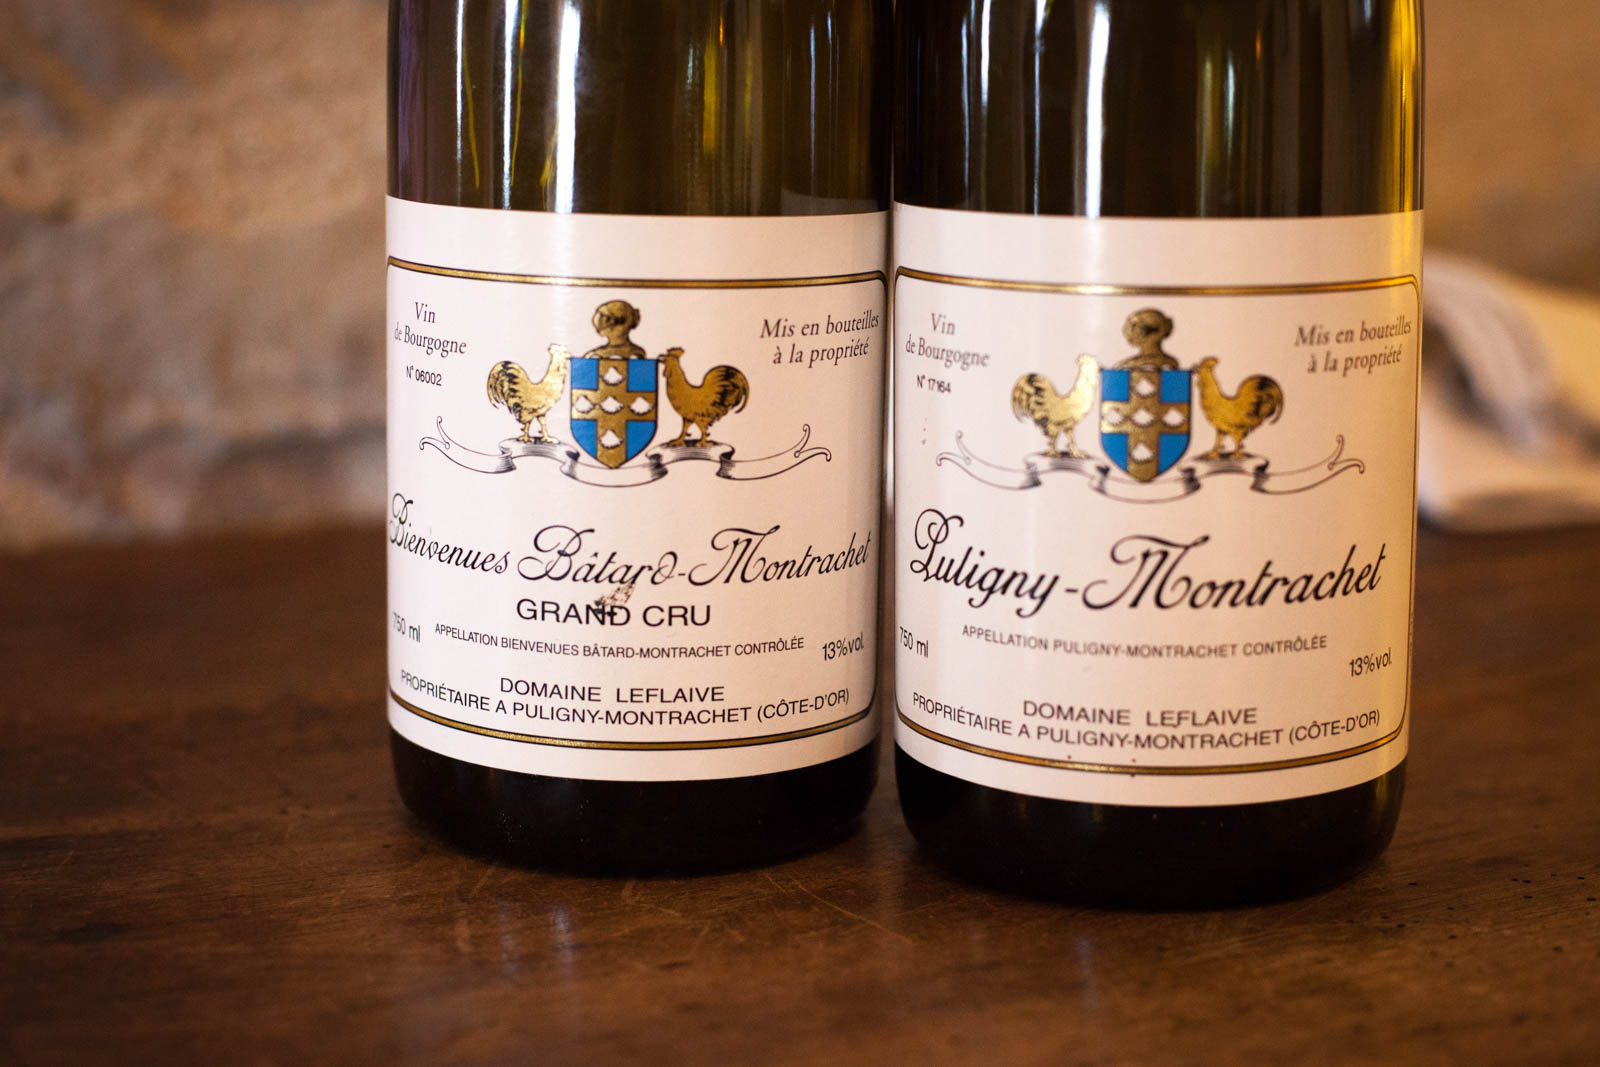 2010 Domaine Leflaive Bienvenues-Bâtard-Montrachet Grand Cru ©Kevin Day/Opening a Bottle